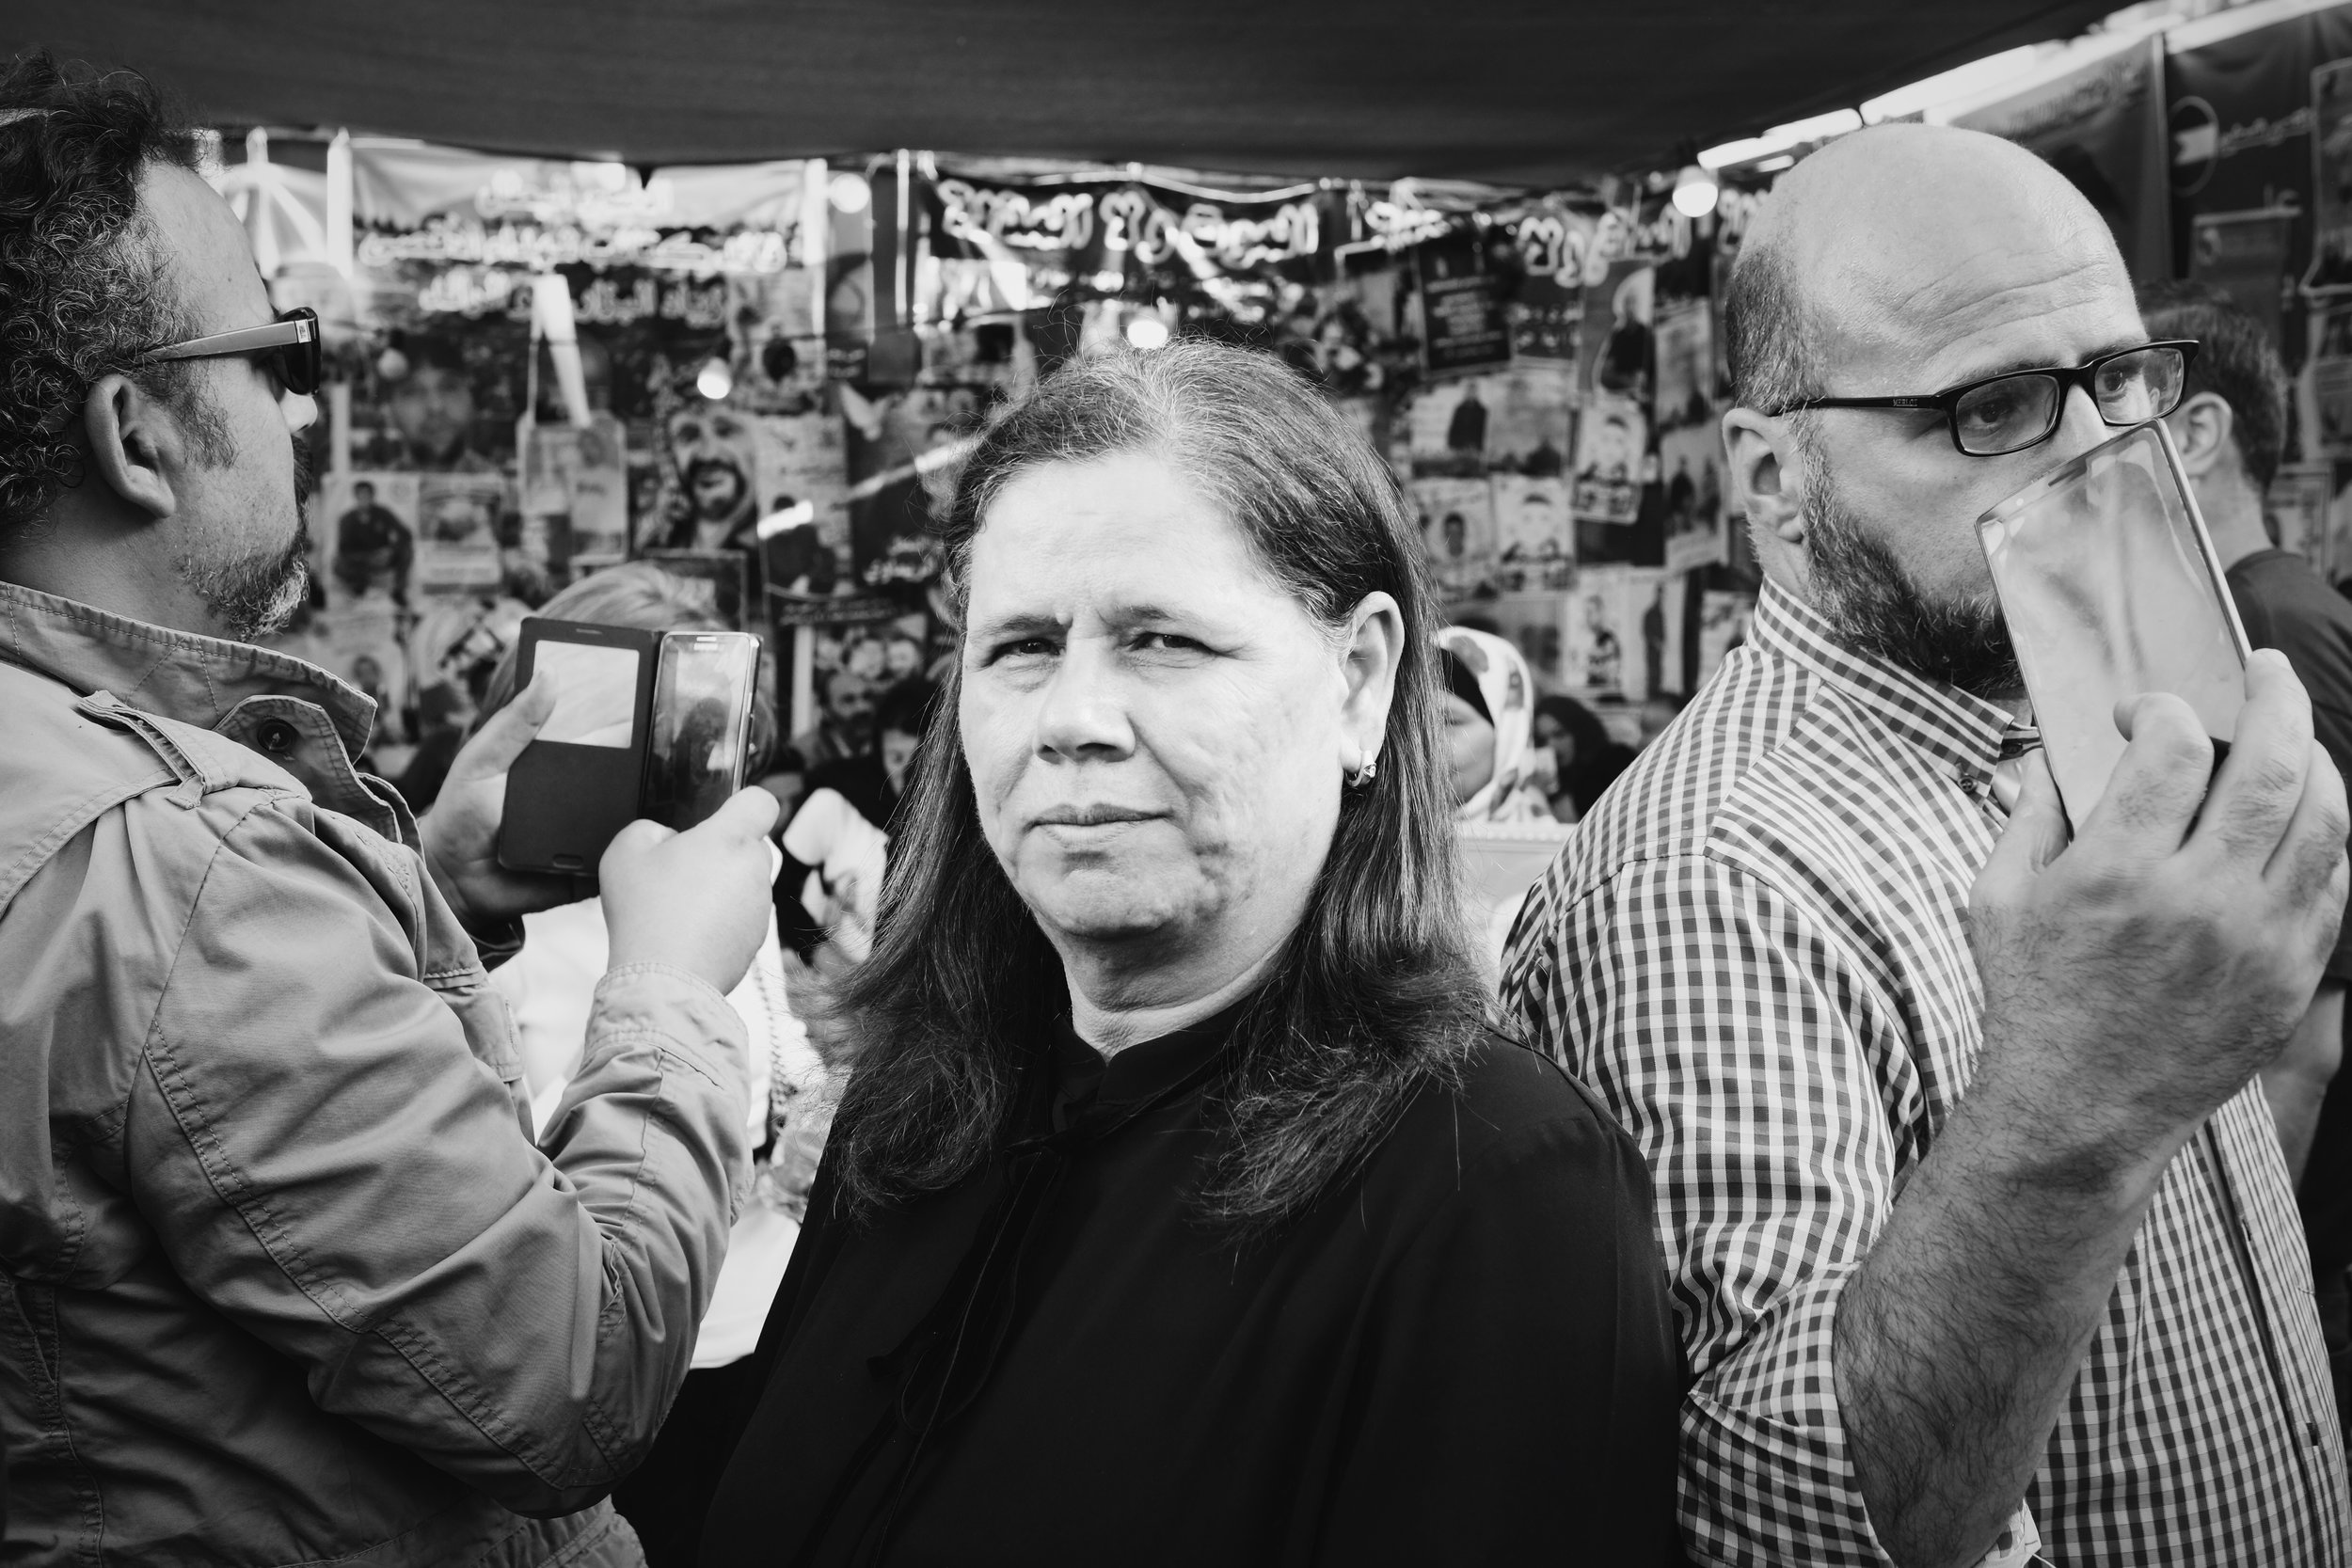 Fadwa Barghouti, the woman behind Palestine's most powerful political leader. Published by Women in the World in association with The New York Times.